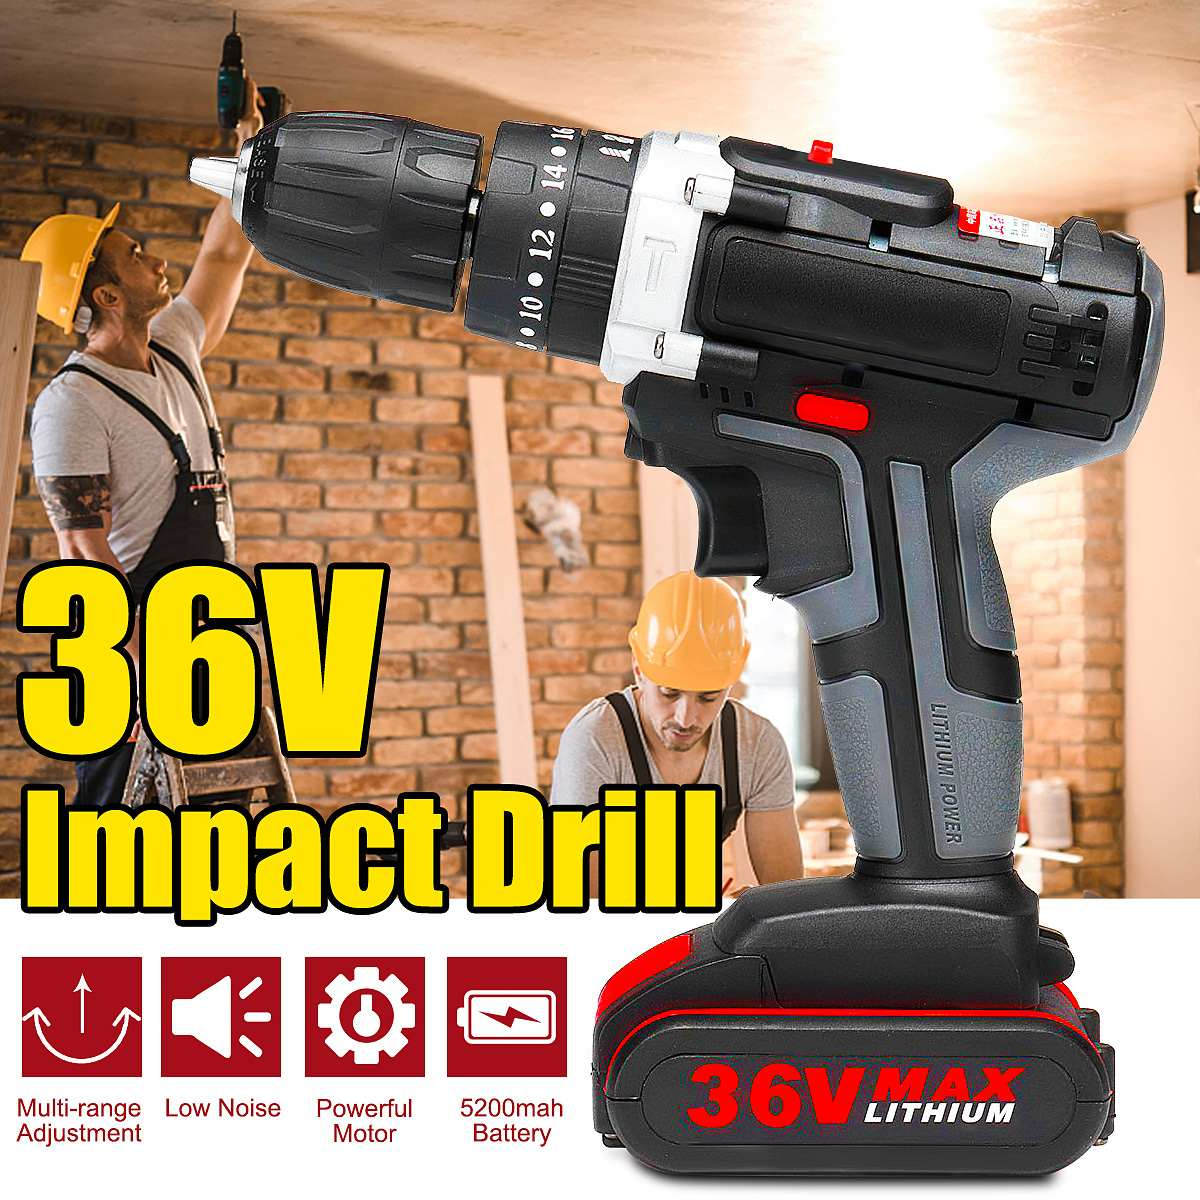 Professional 36V Electric Impact Cordless Drill 1/2 Rechargeable Li-ion Battery Wireless DIY Home Electric Wrench Power ToolsProfessional 36V Electric Impact Cordless Drill 1/2 Rechargeable Li-ion Battery Wireless DIY Home Electric Wrench Power Tools